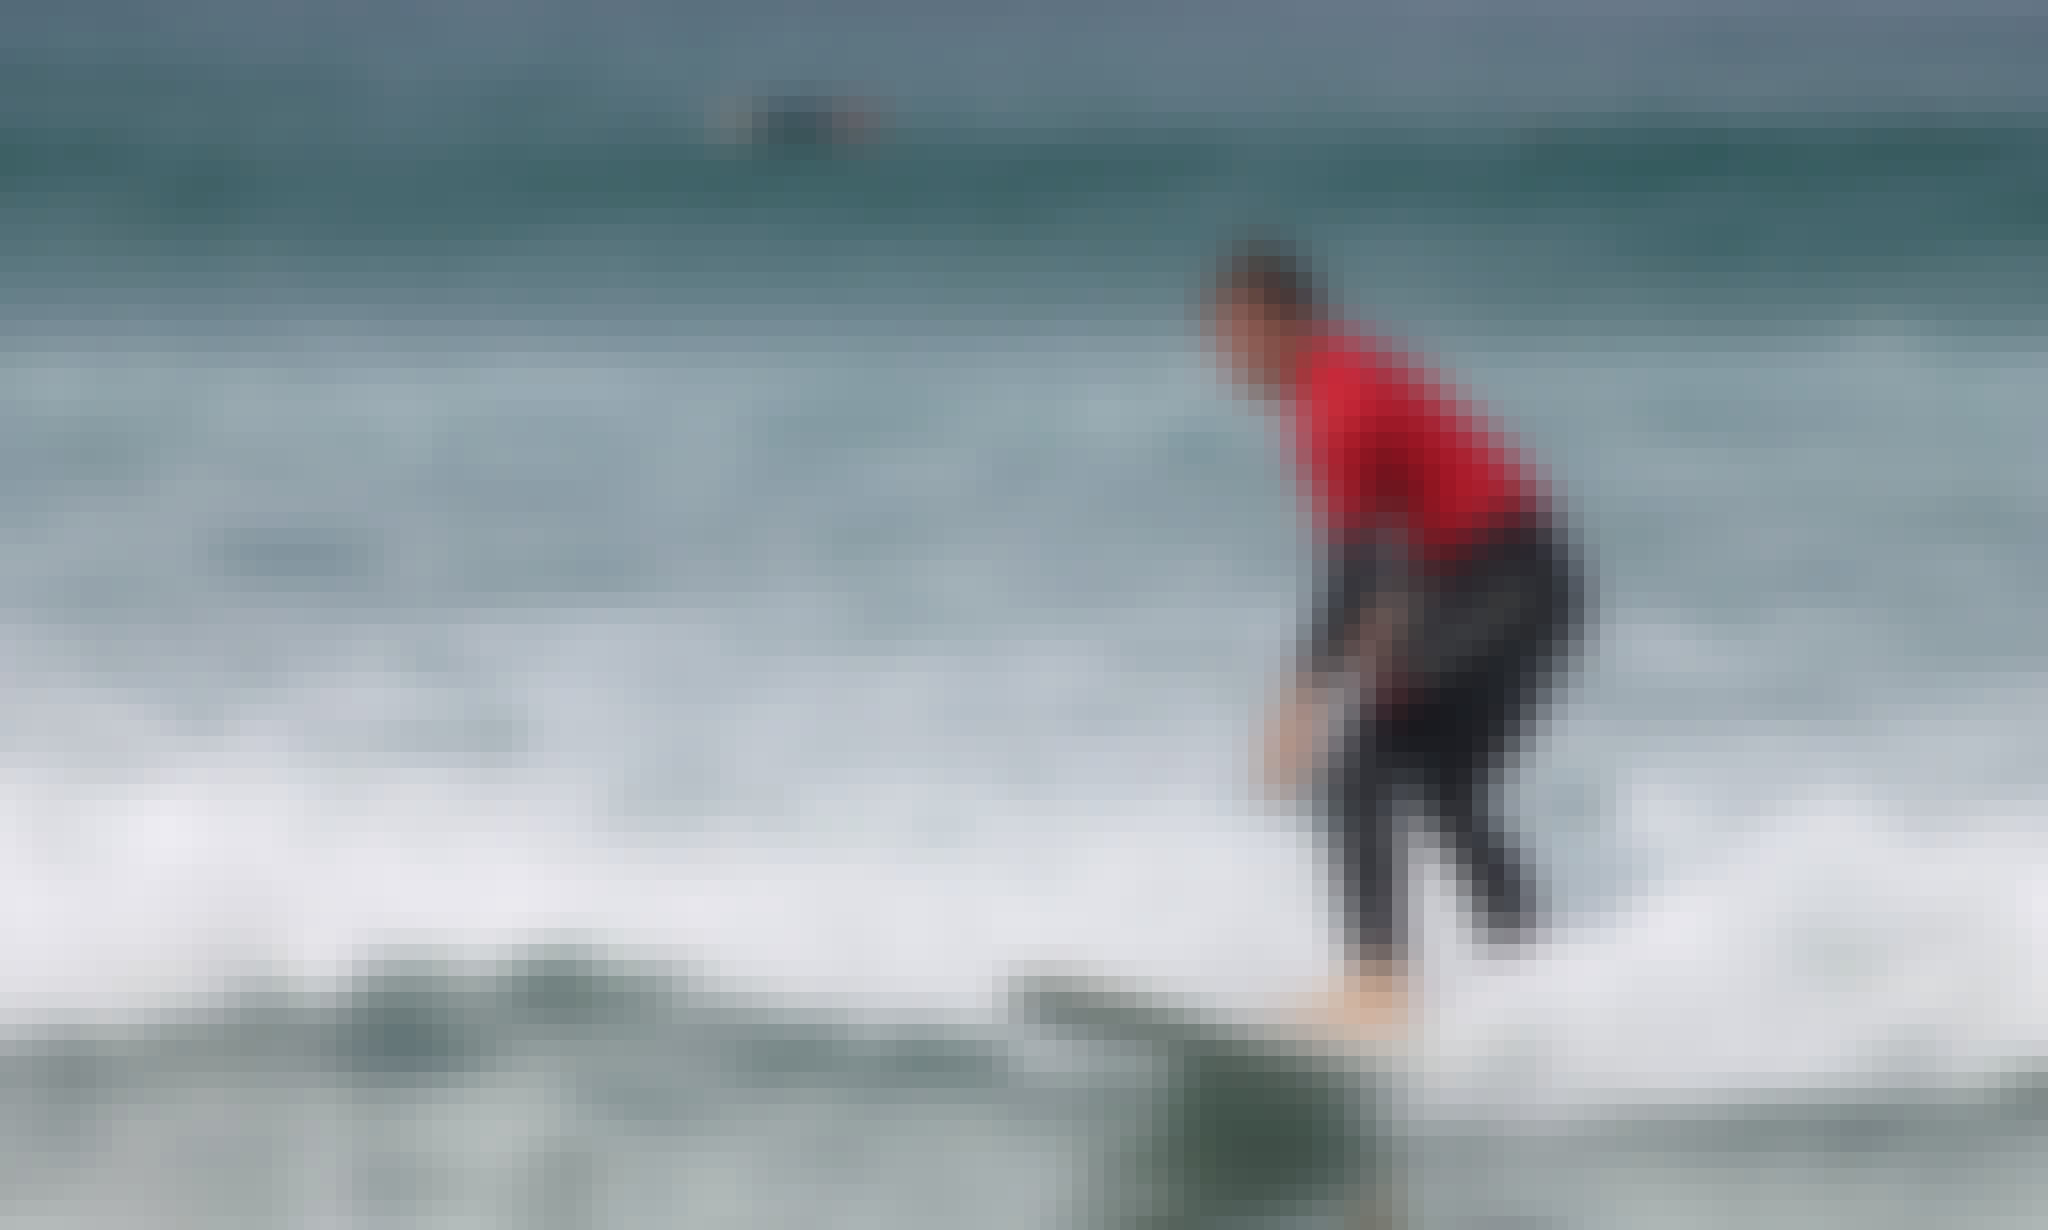 Play with waves - Surf lessons offered in Canarias, Spain